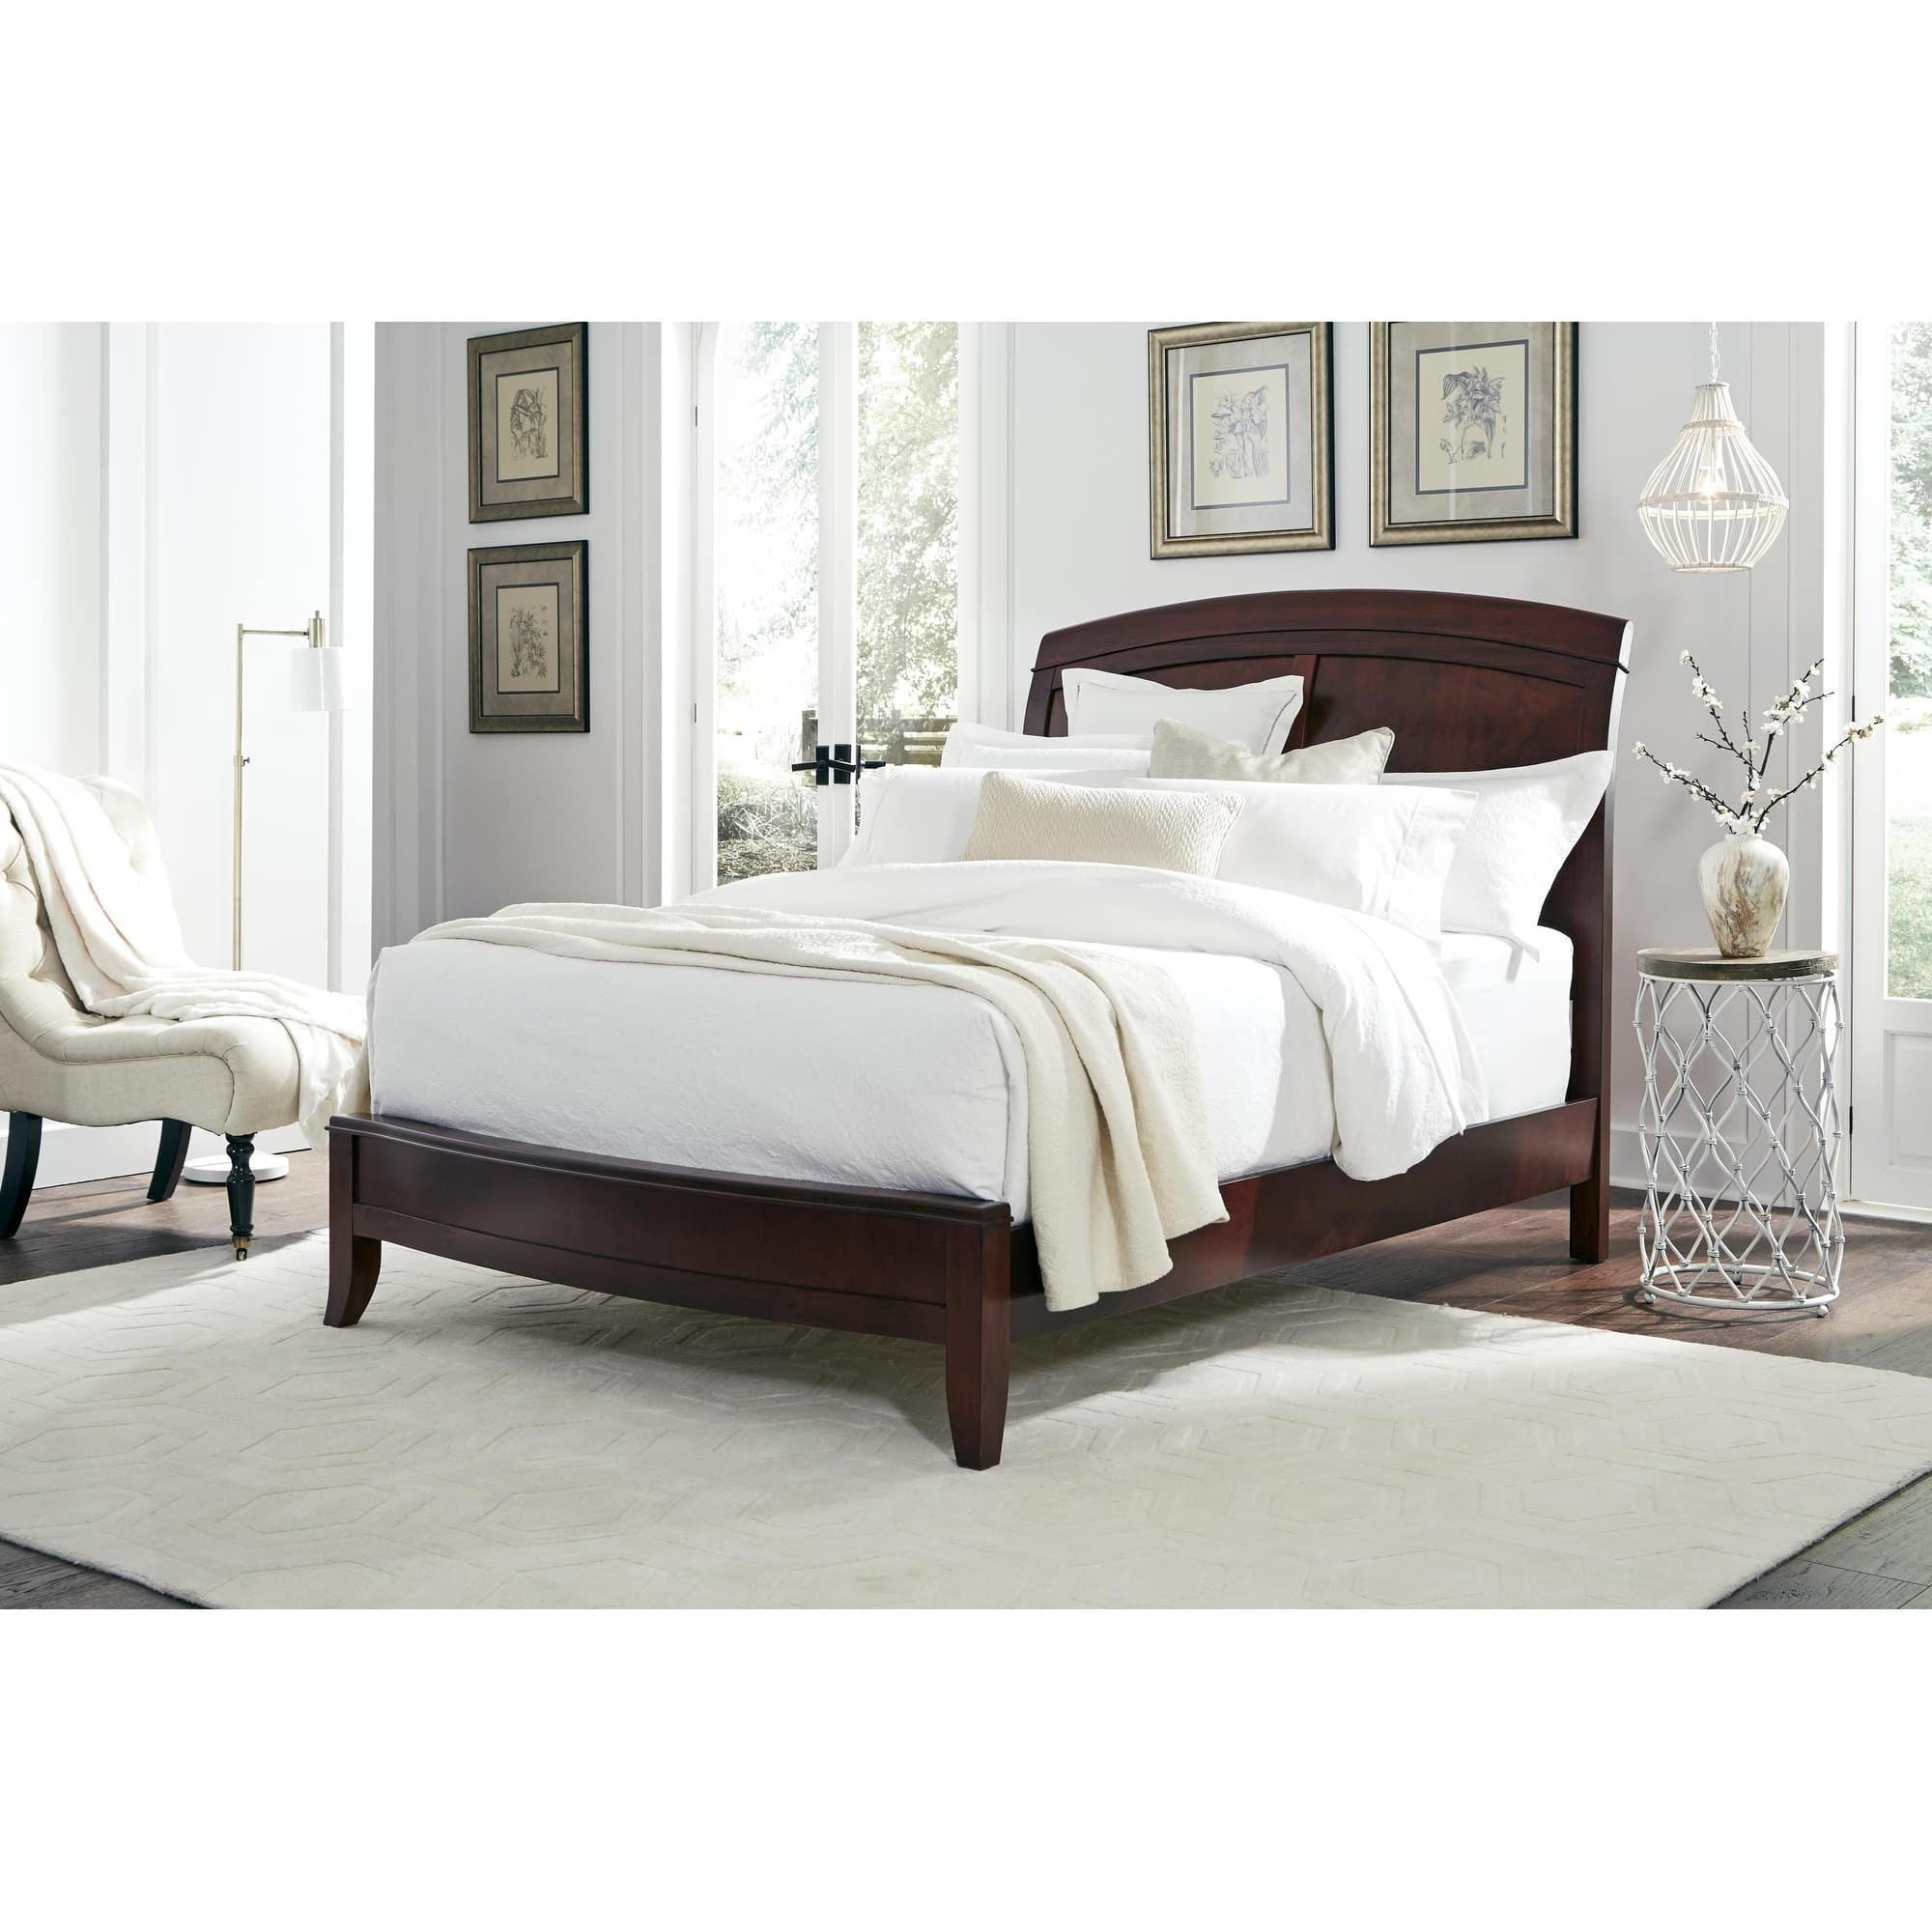 Shop Black Friday Deals On Brighton King Size Low Profile Sleigh Bed In Cinnamon Overstock 3140686